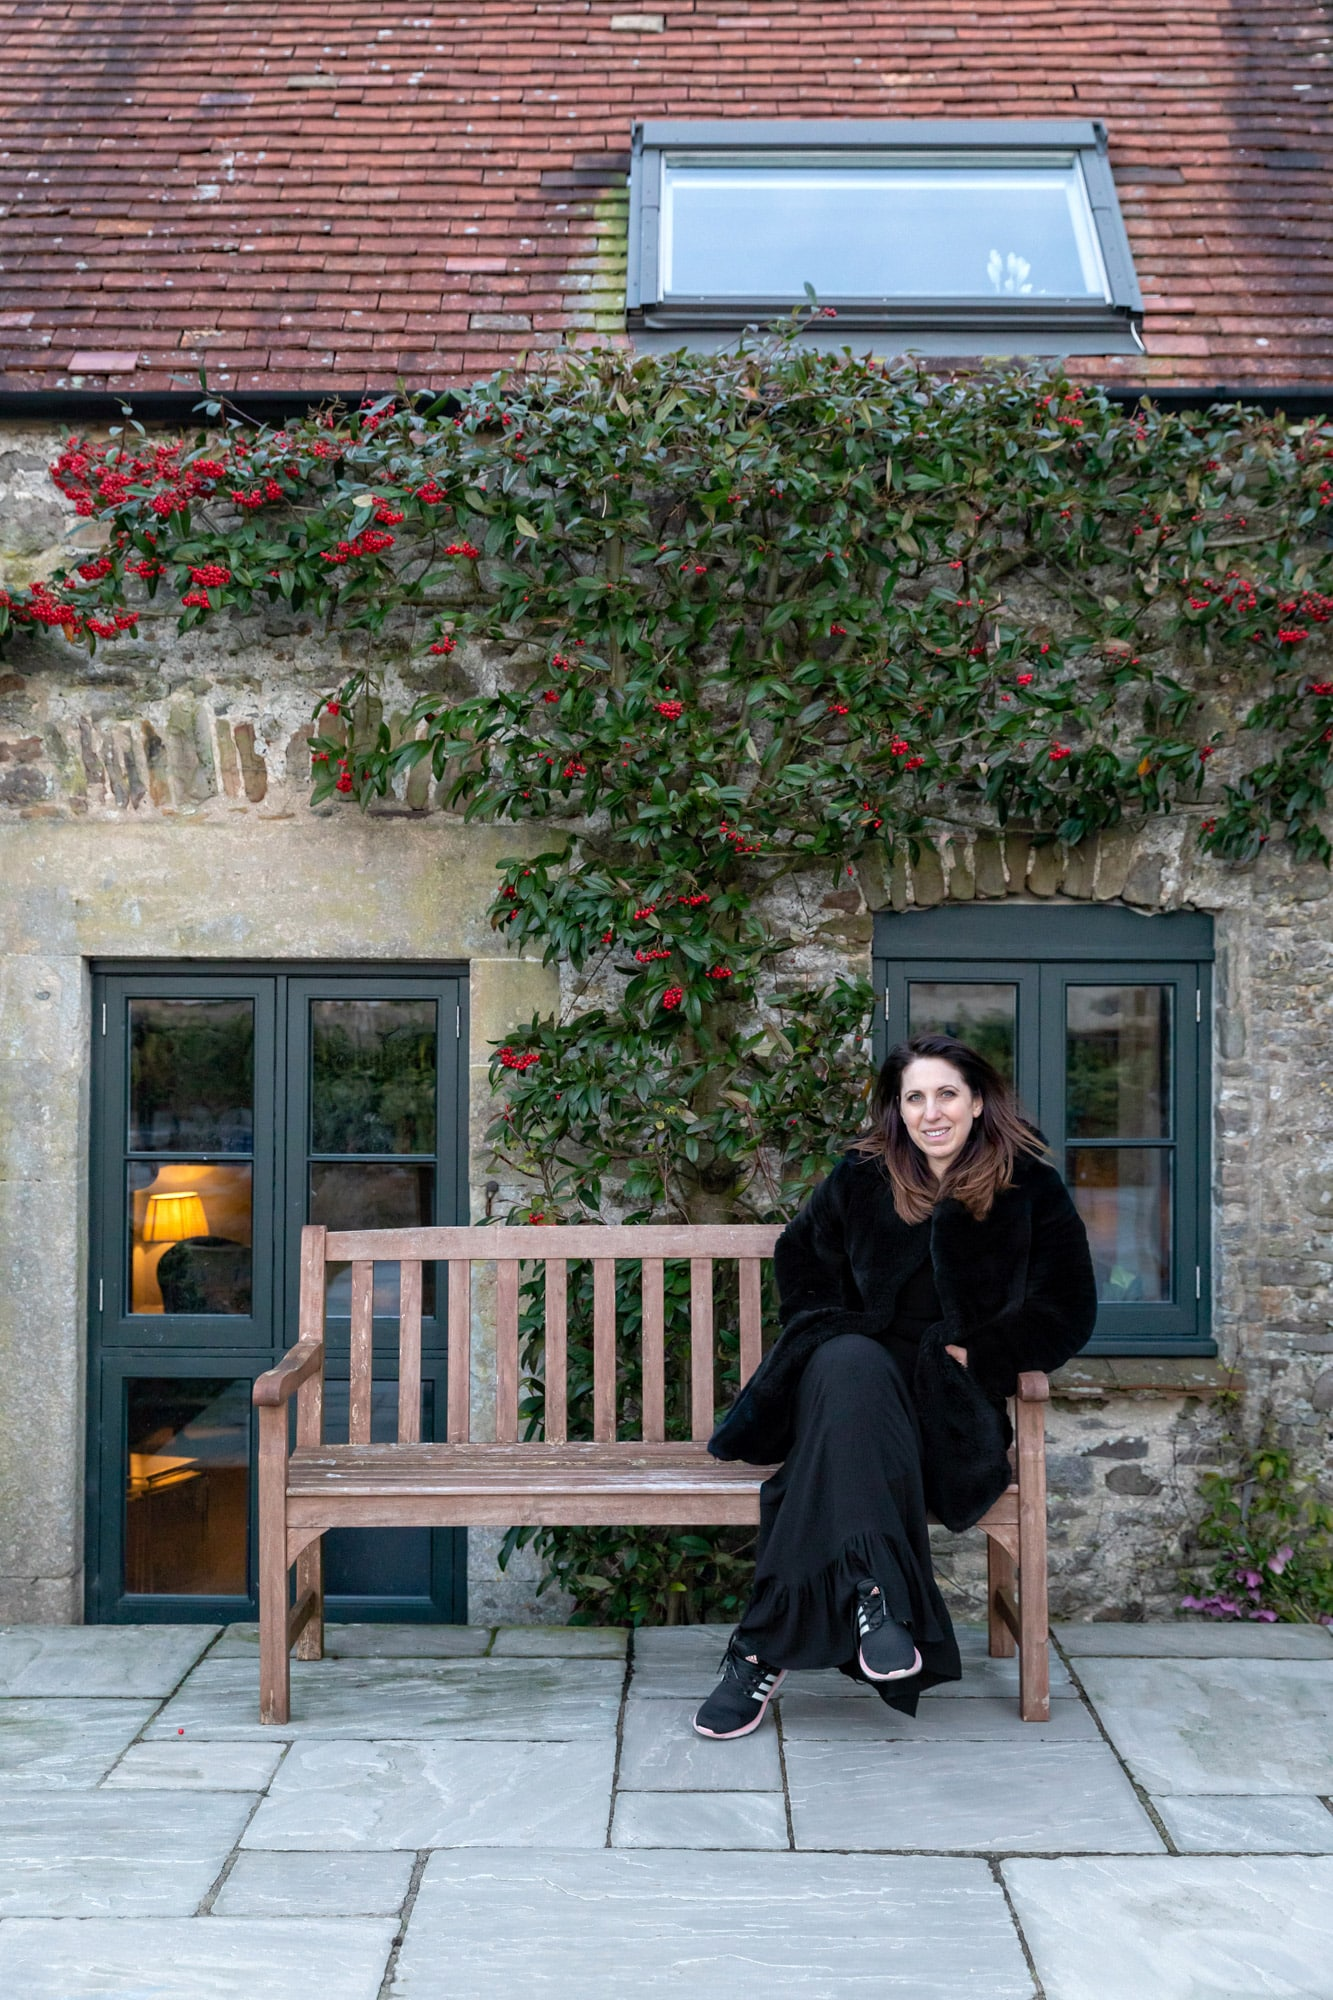 portrait of an interior designer sitting on the bench in front of the barn she decorated